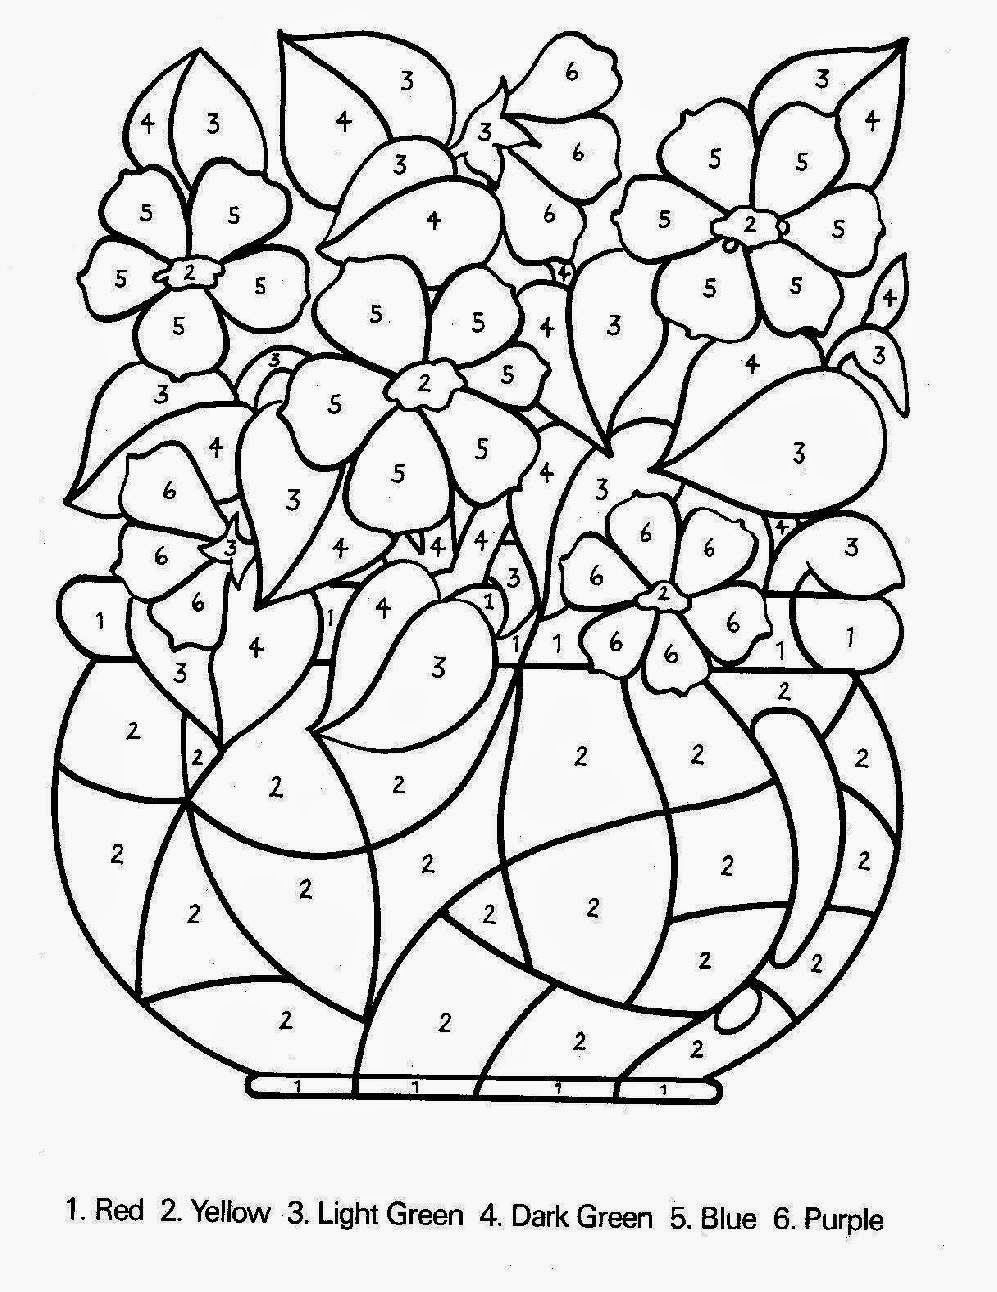 Worksheets And Coloring Pages Color By Number Coloring Pages Spring Coloring Pages Free Coloring Pages Free Printable Coloring